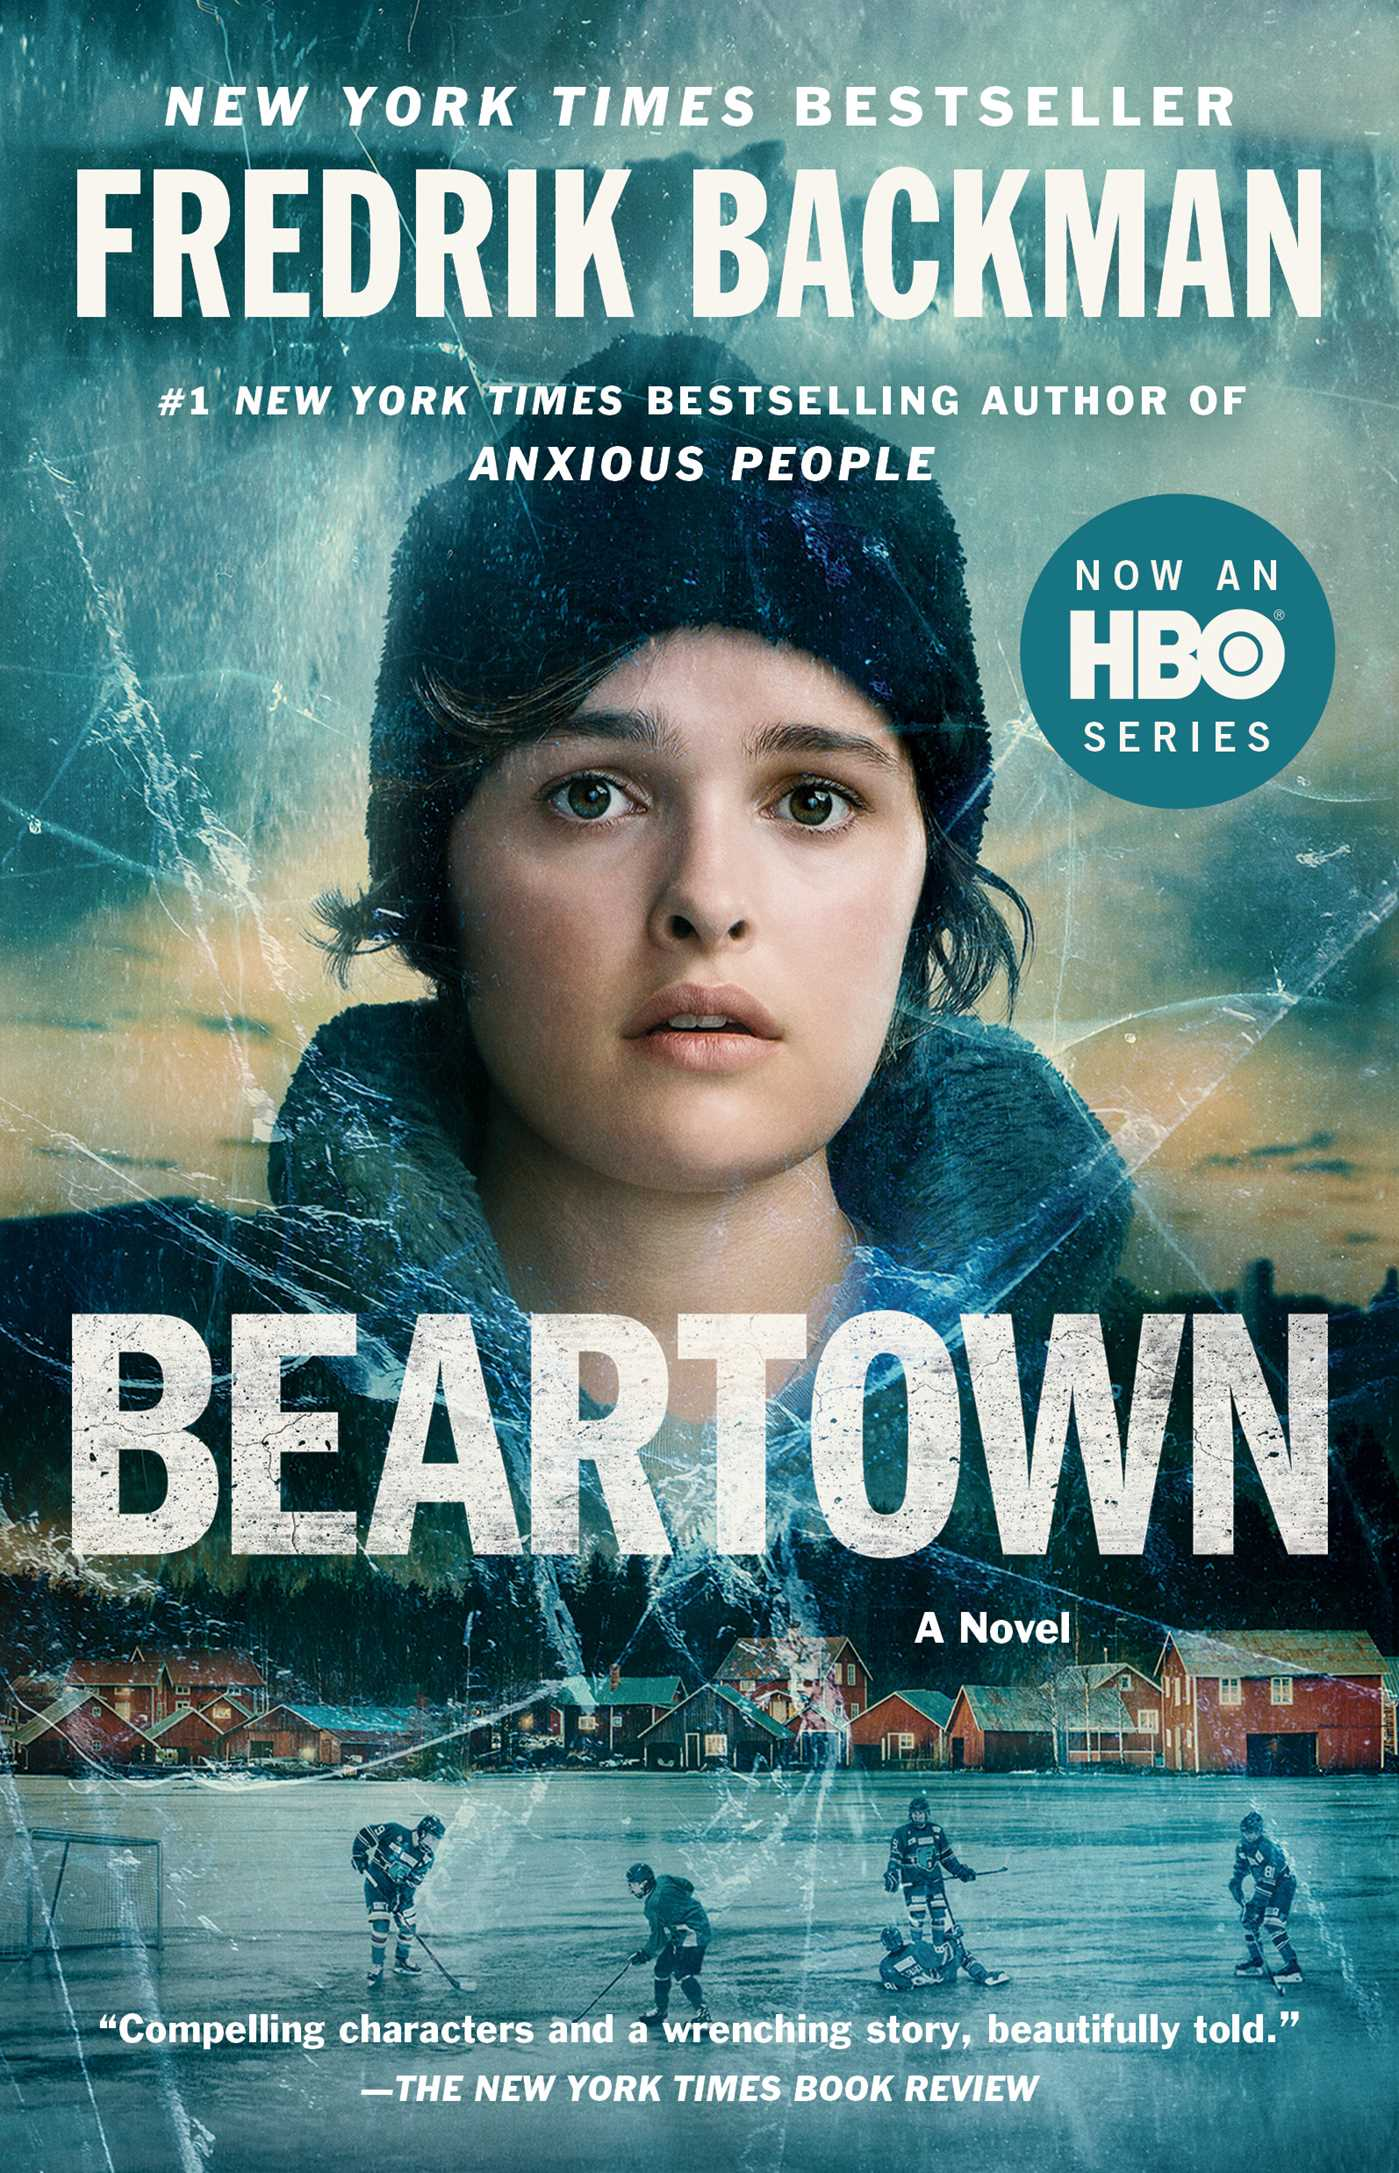 Beartown 9781501160783 hr